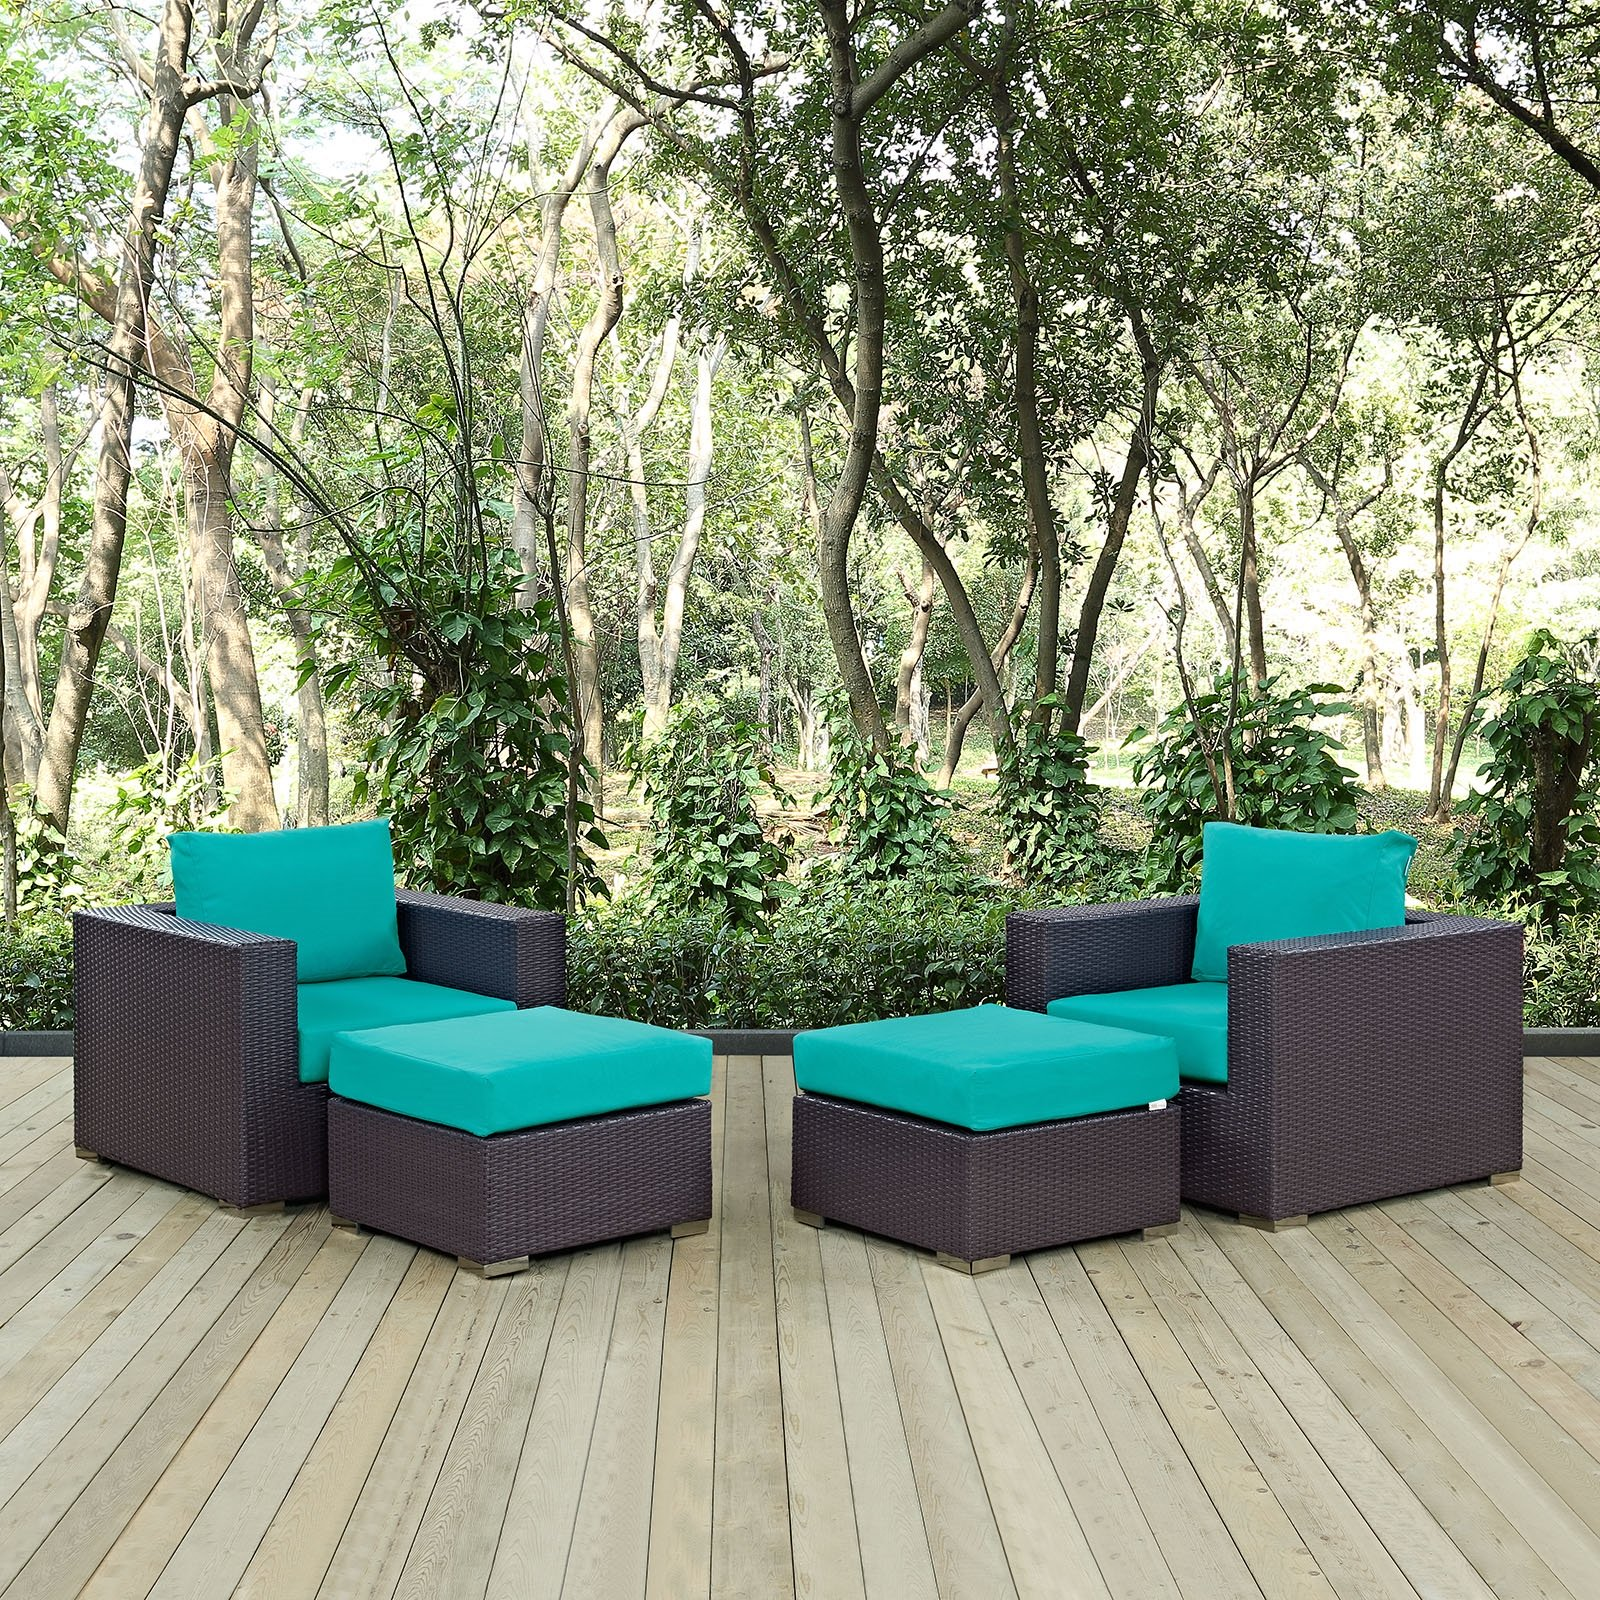 Convene 4 Piece Outdoor Patio Sectional Set in Espresso Turquoise